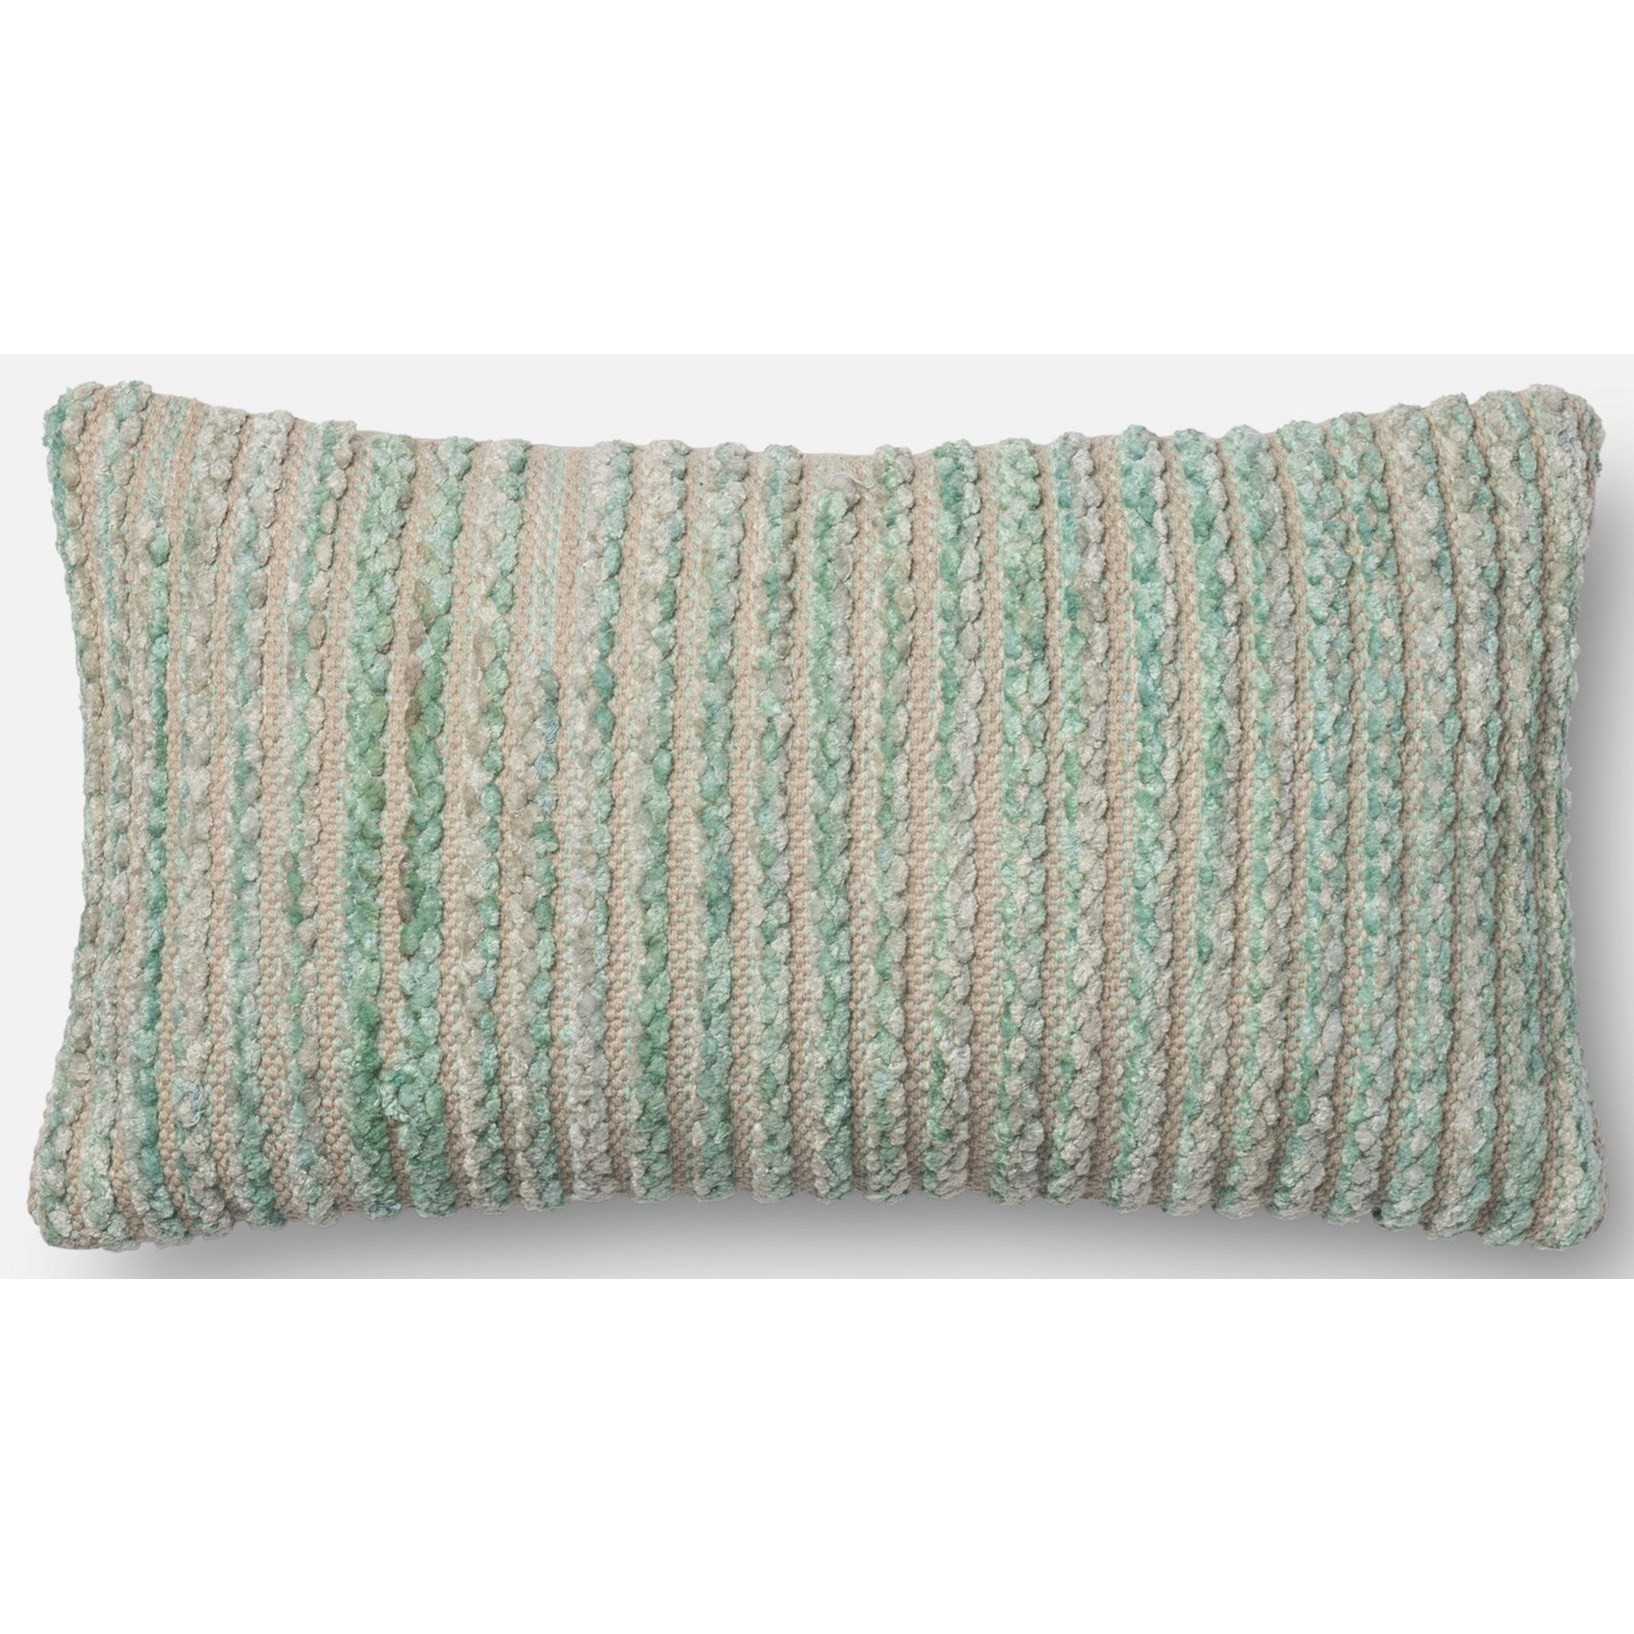 "Loloi Rugs String Theory 1' X 1'-10"" Down Pillow - Item Number: DSETMIS02SISGPIL0"